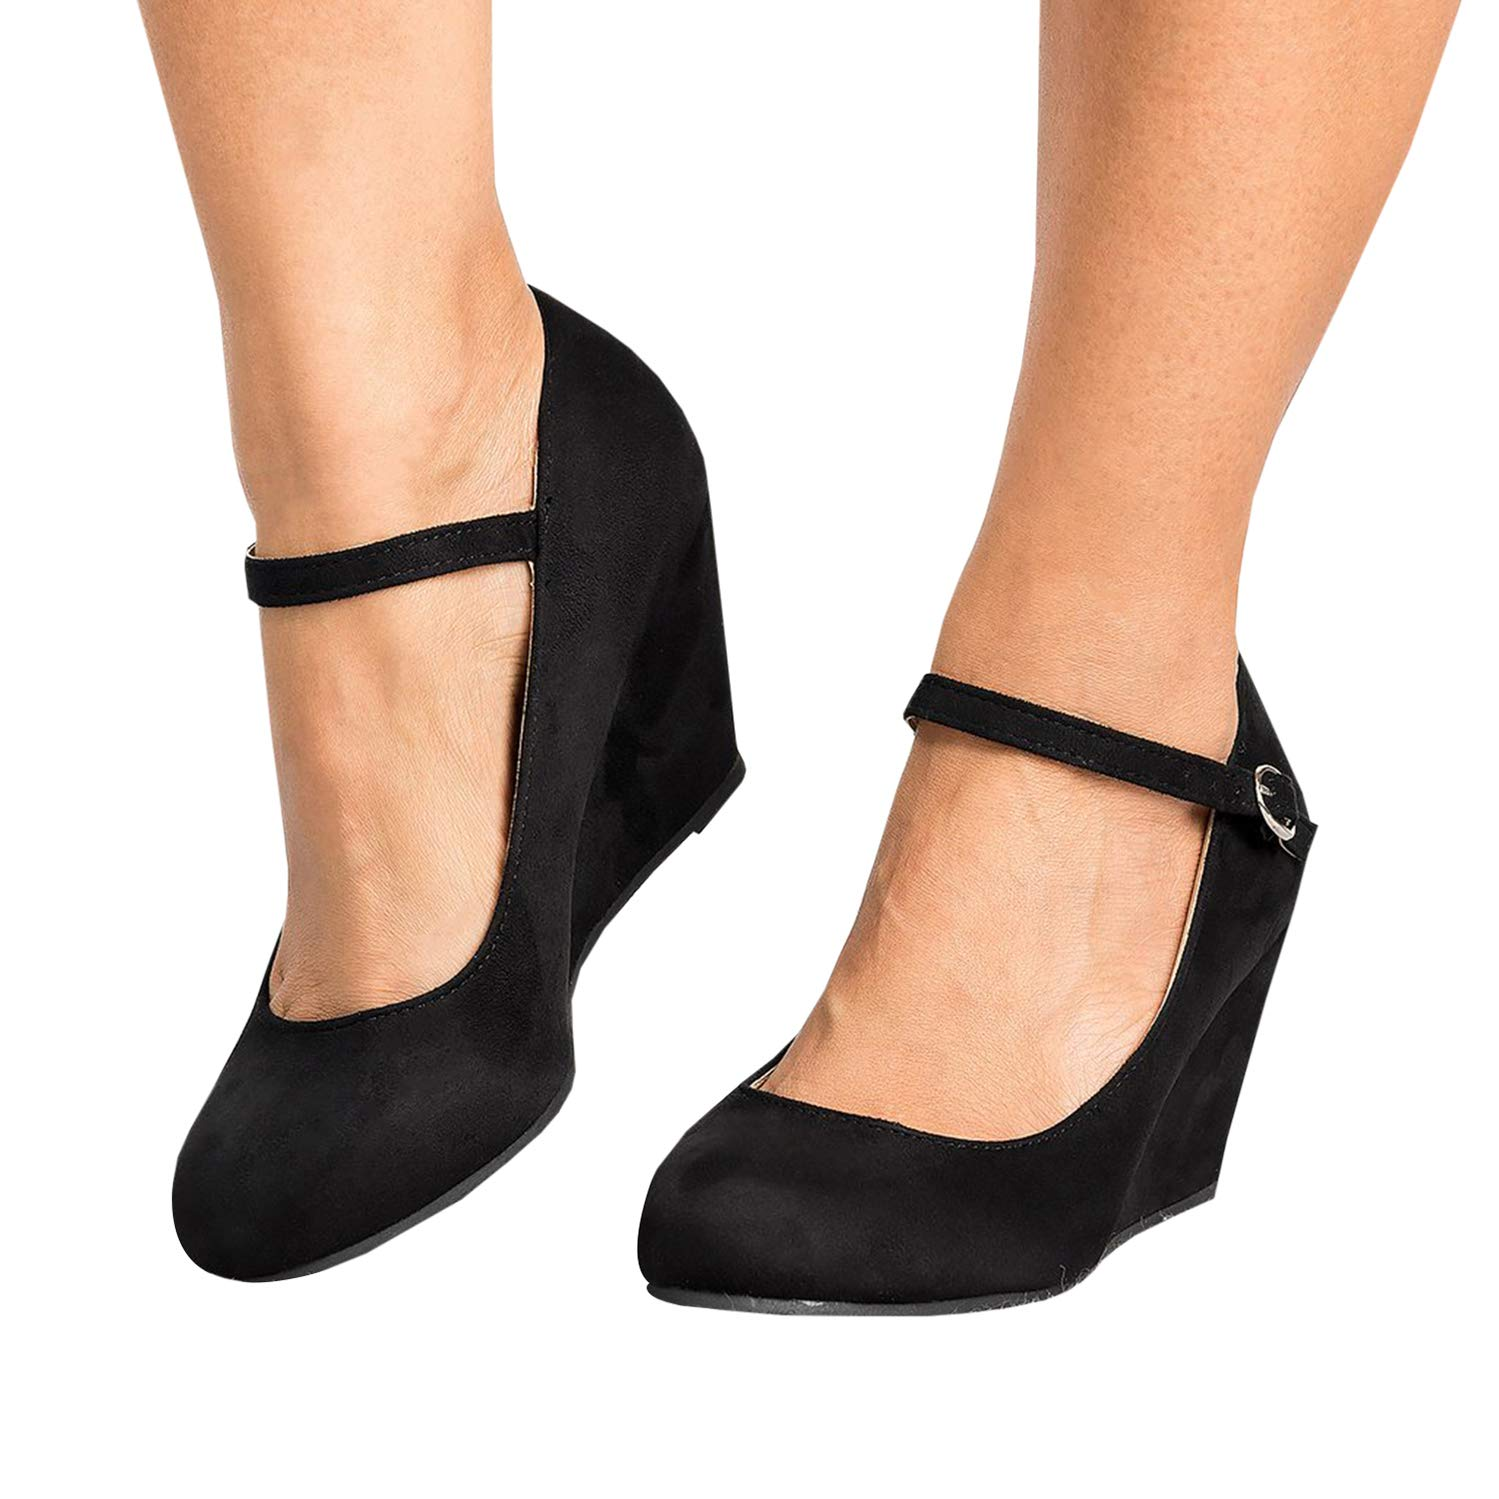 Black Womens Mary Jane Wedge Pumps Closed Toe Ankle Strap Mid Heel Office Work shoes